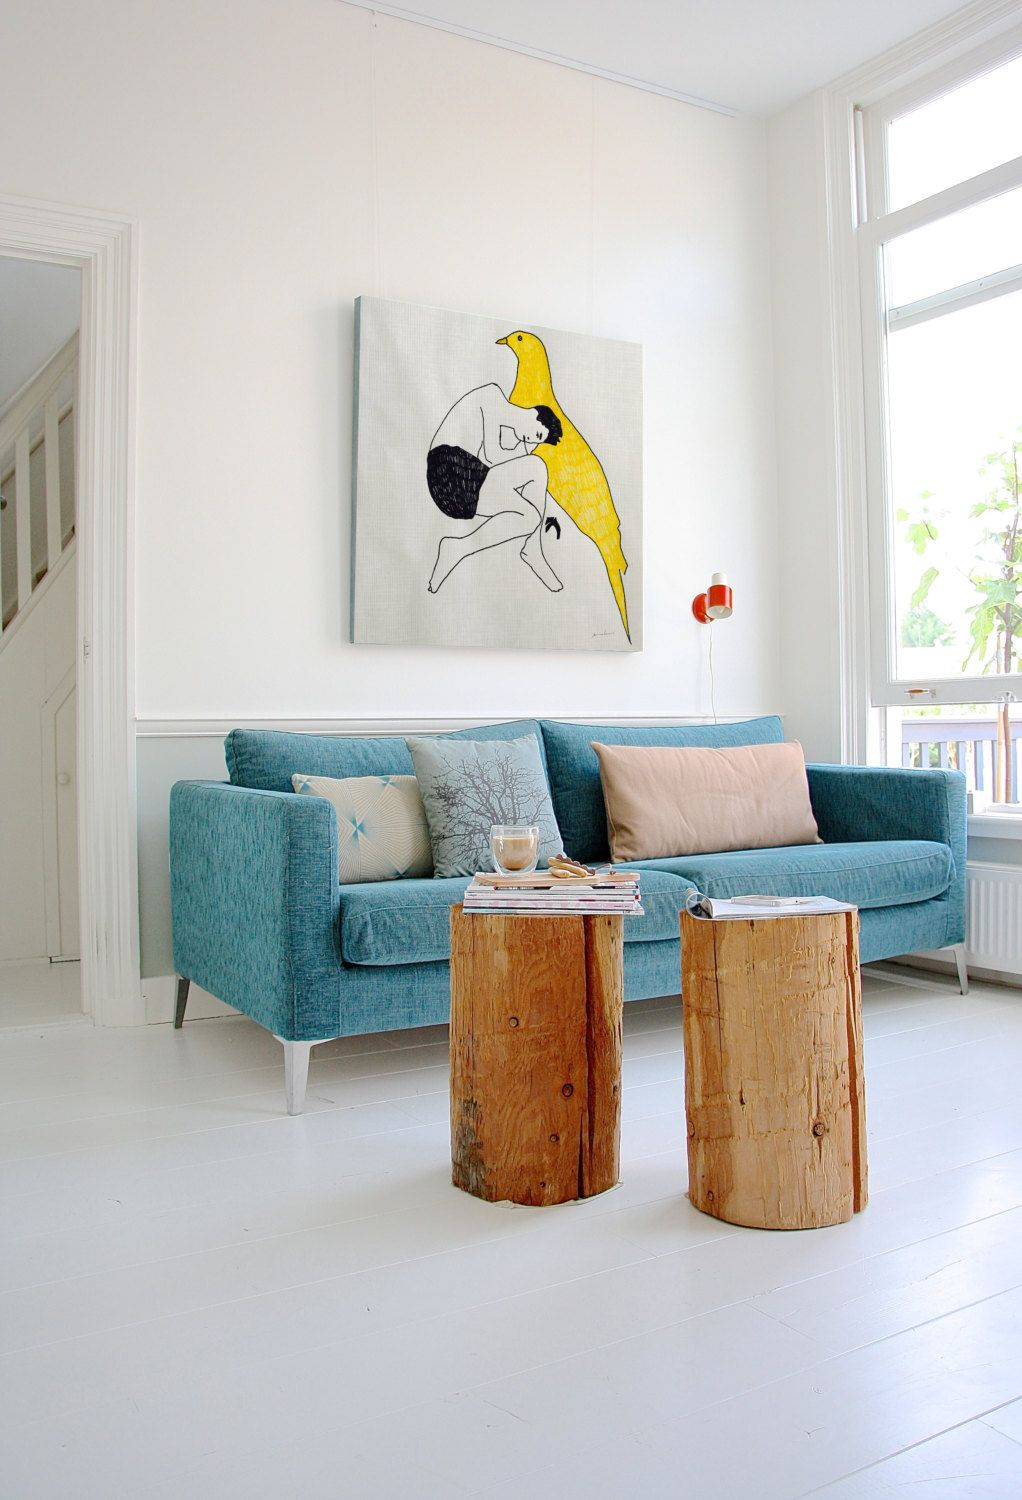 Homedesignideas Eu: Teal Living Room Decor With A Blue Sofa